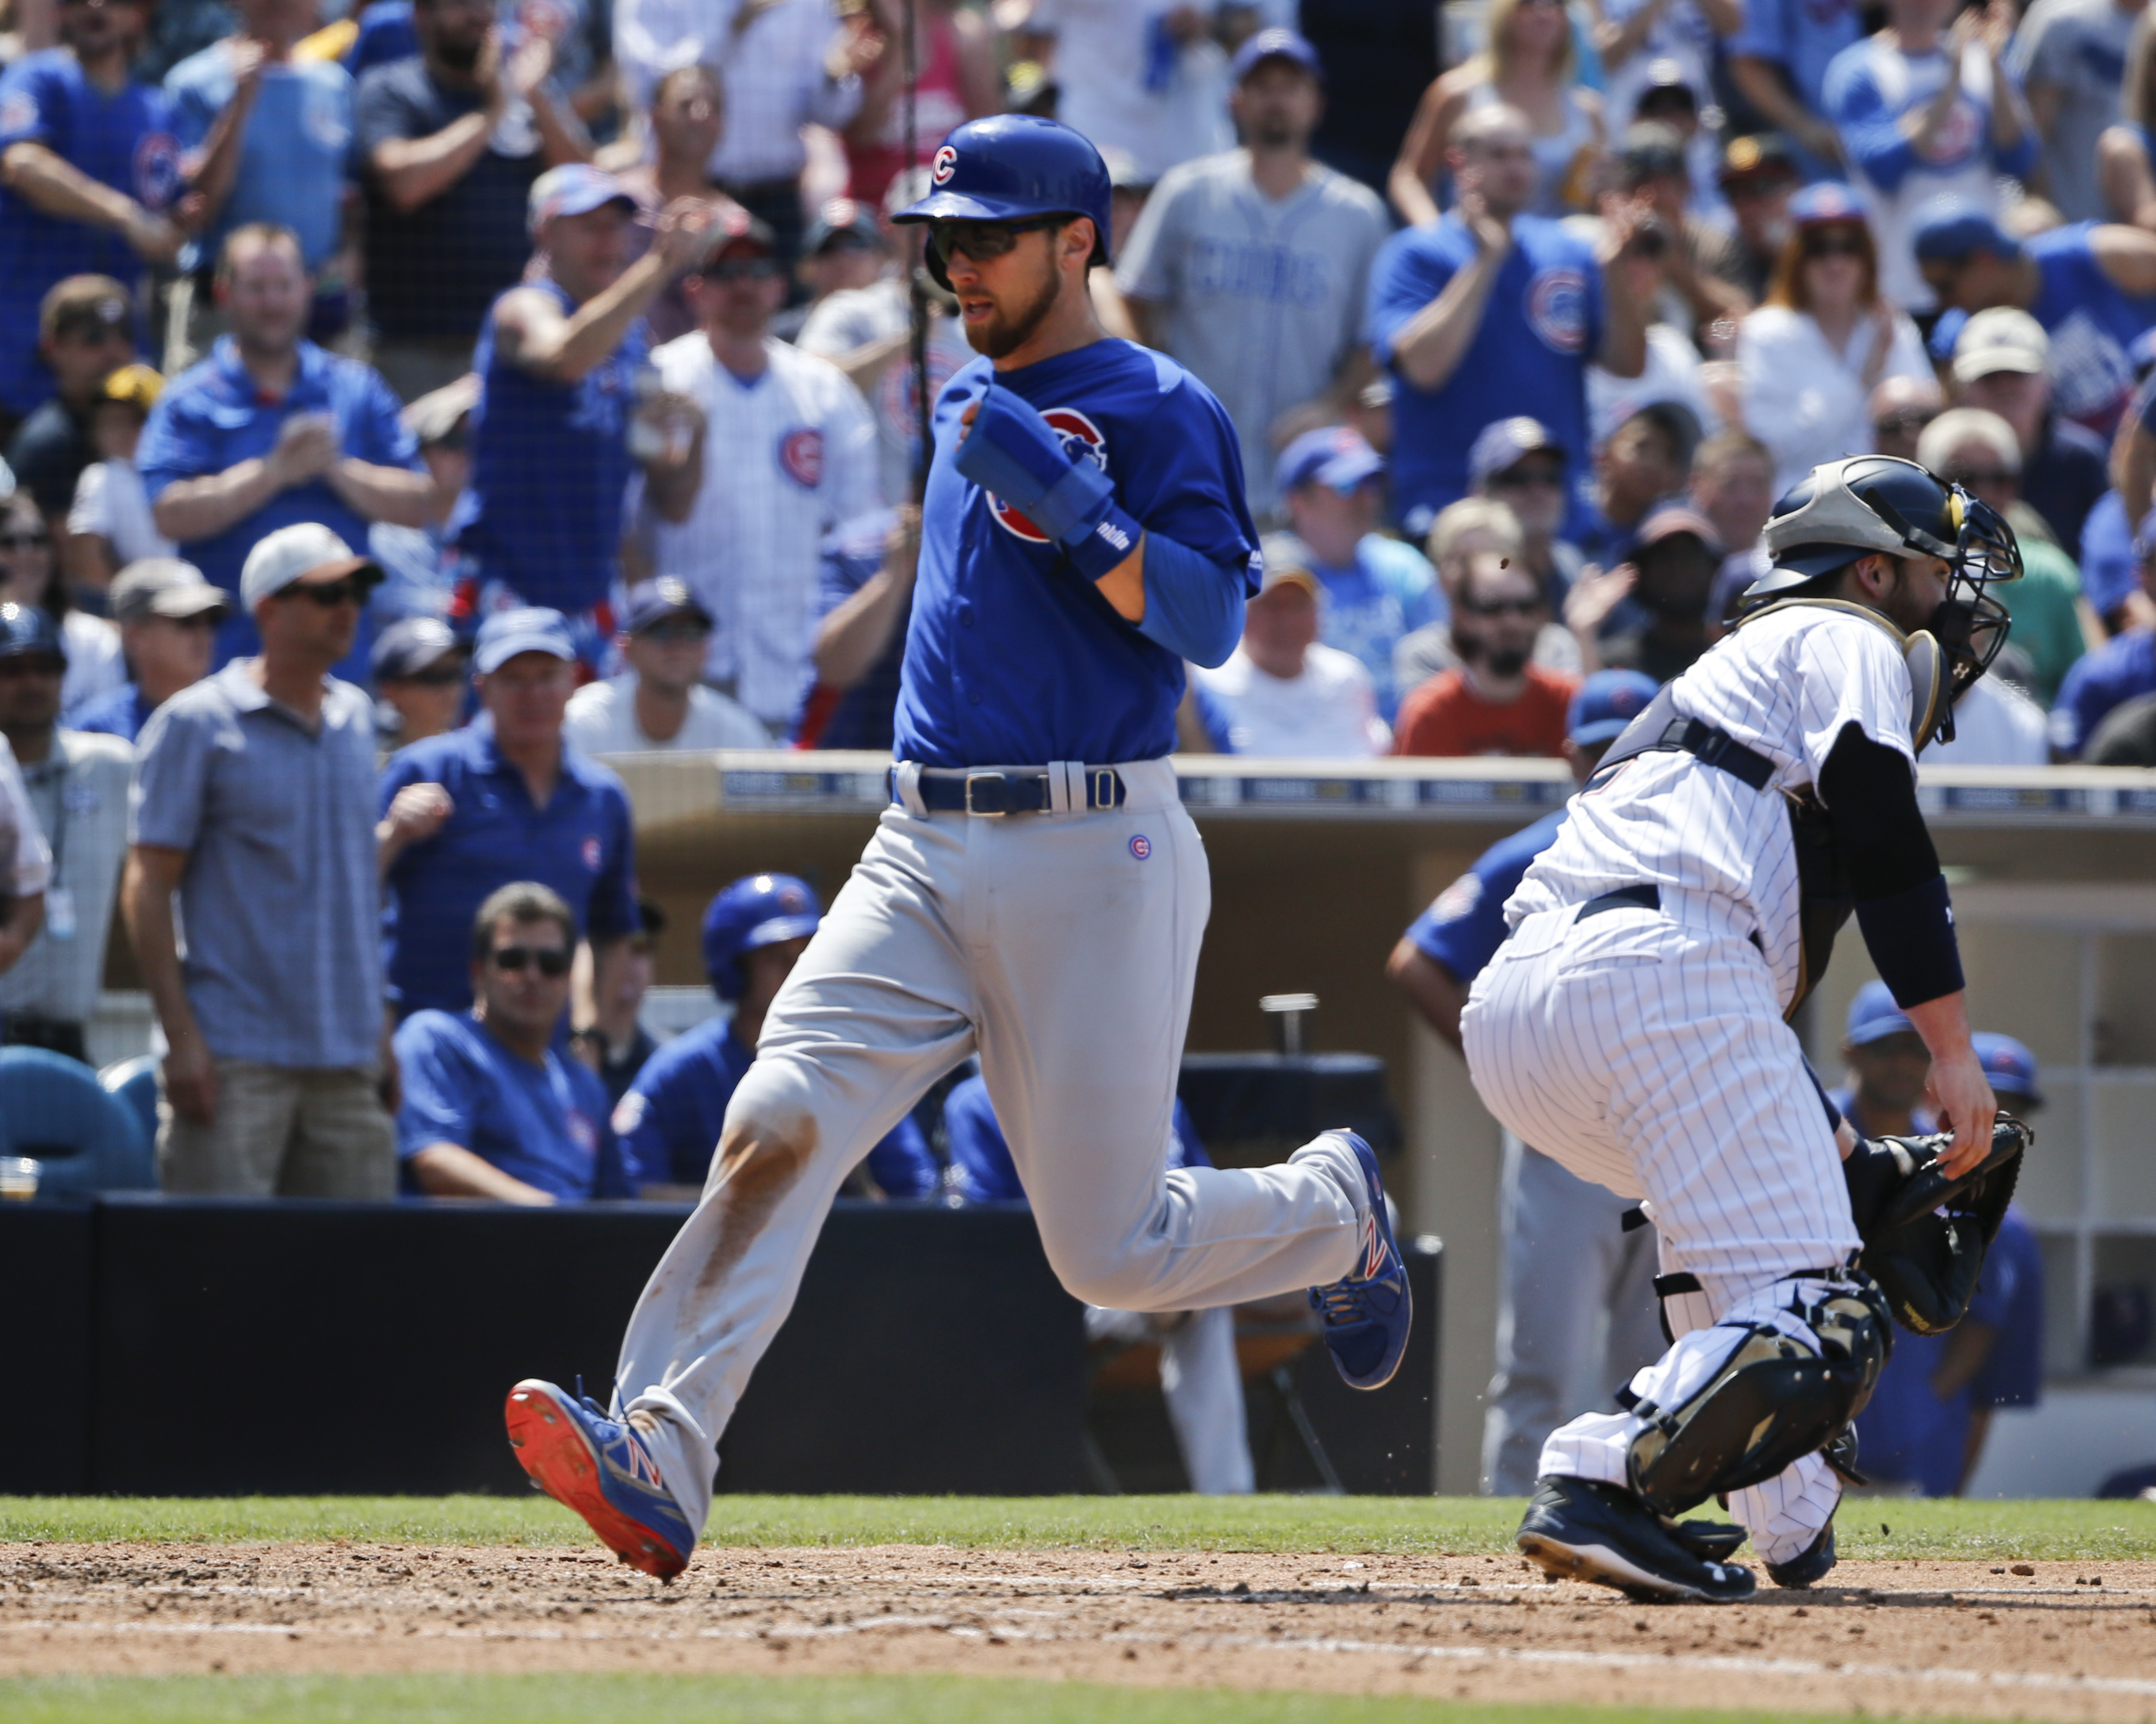 Chicago Cubs' Ben Zobrist races past San Diego Padres catcher Derek Norris while scoring in the sixth inning of a baseball game Wednesday, Aug. 24, 2016, in San Diego. Zobrist and Kris Bryant both scored on an error by Padres shortstop Luis Sardinas. (AP